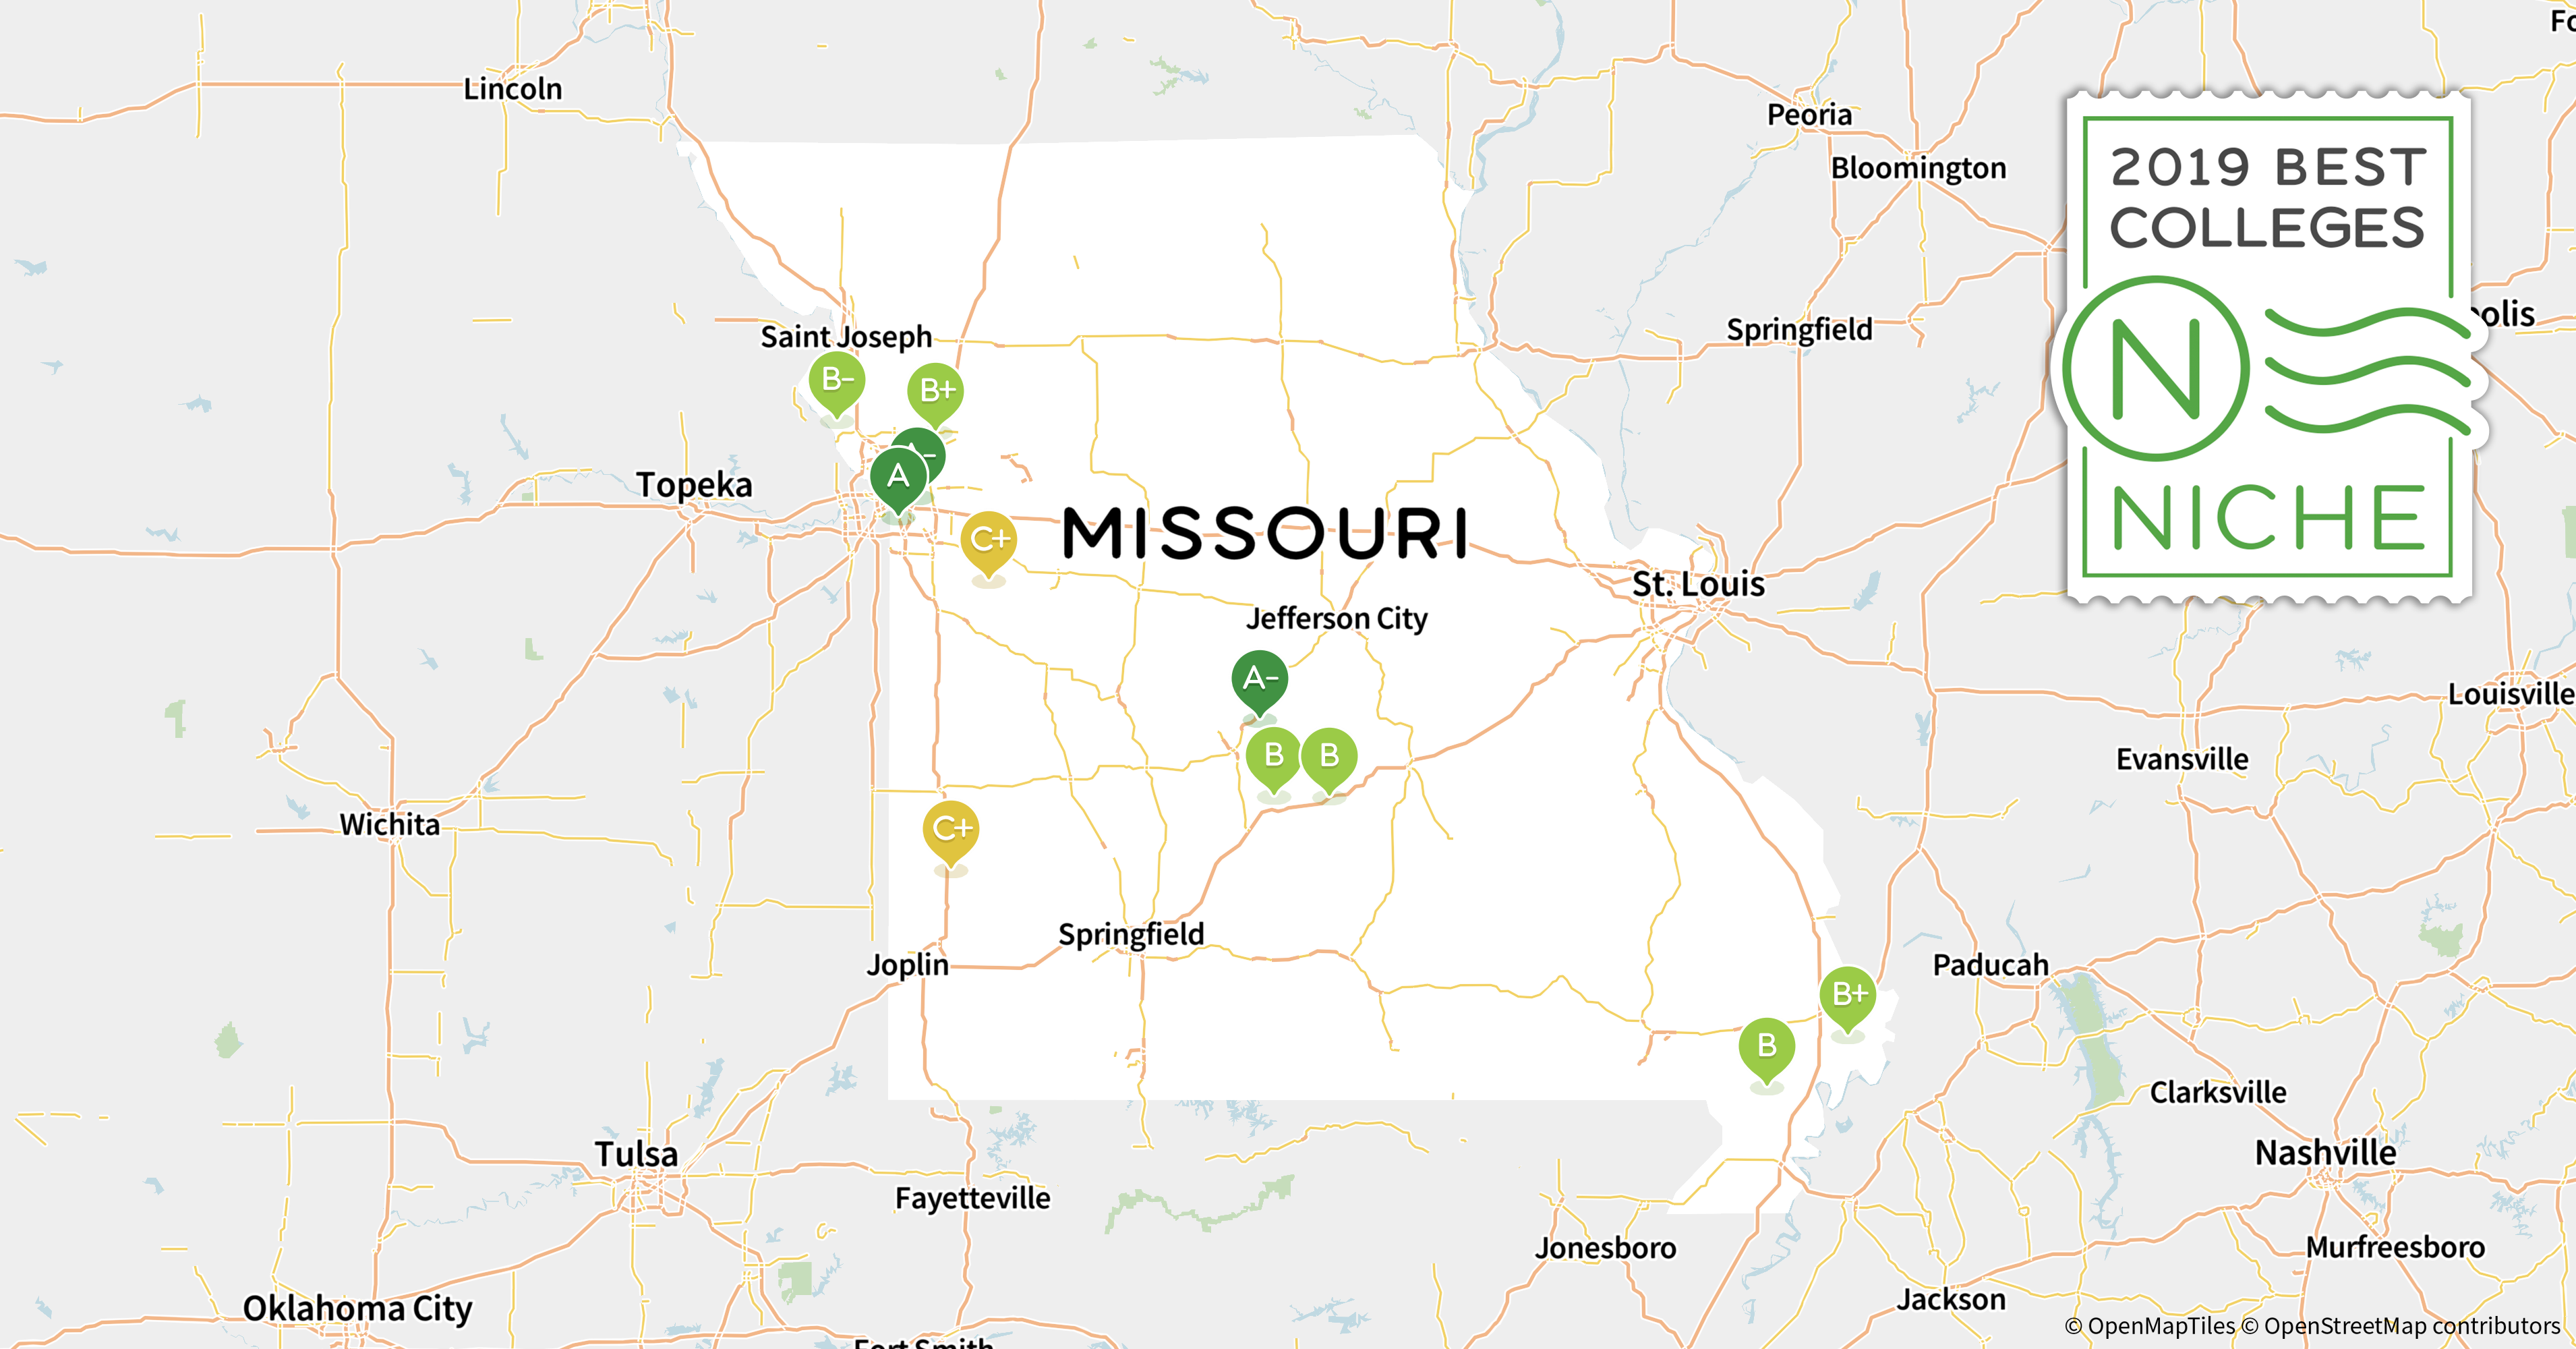 2019 Best Colleges In Missouri Niche